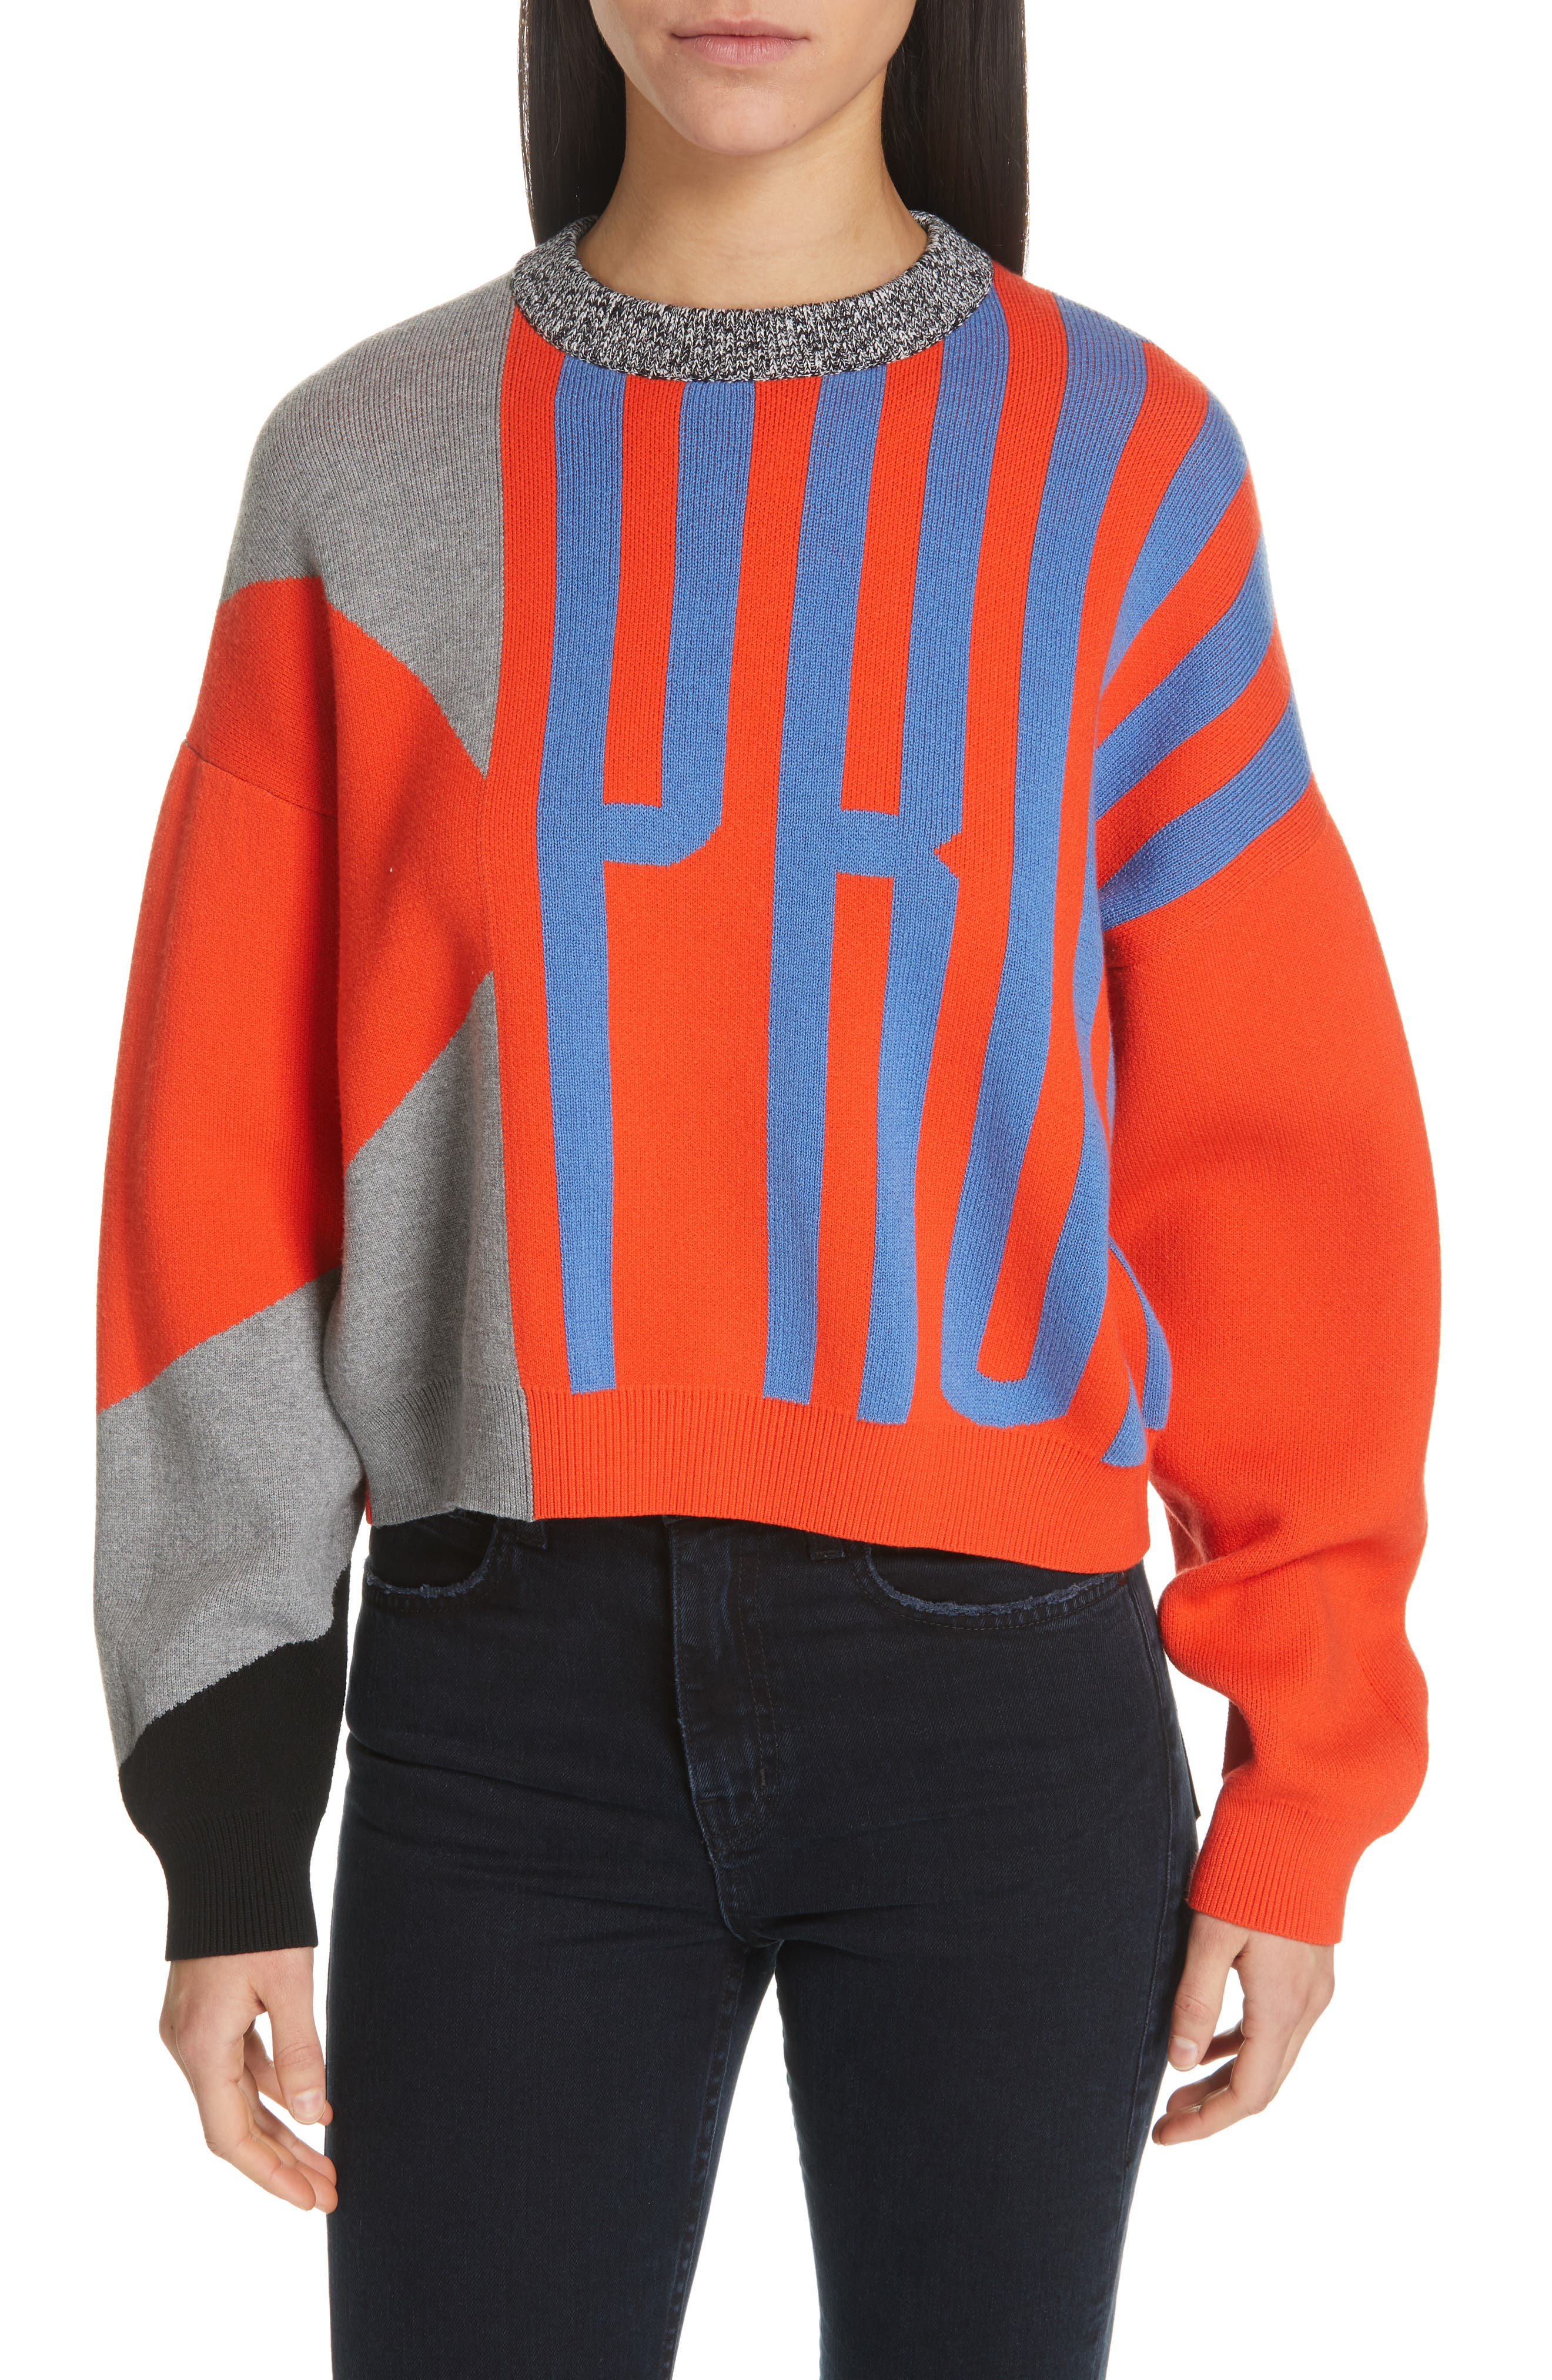 PSWL Graphic Logo Sweater,                             Main thumbnail 1, color,                             BRIGHT RED COMBO